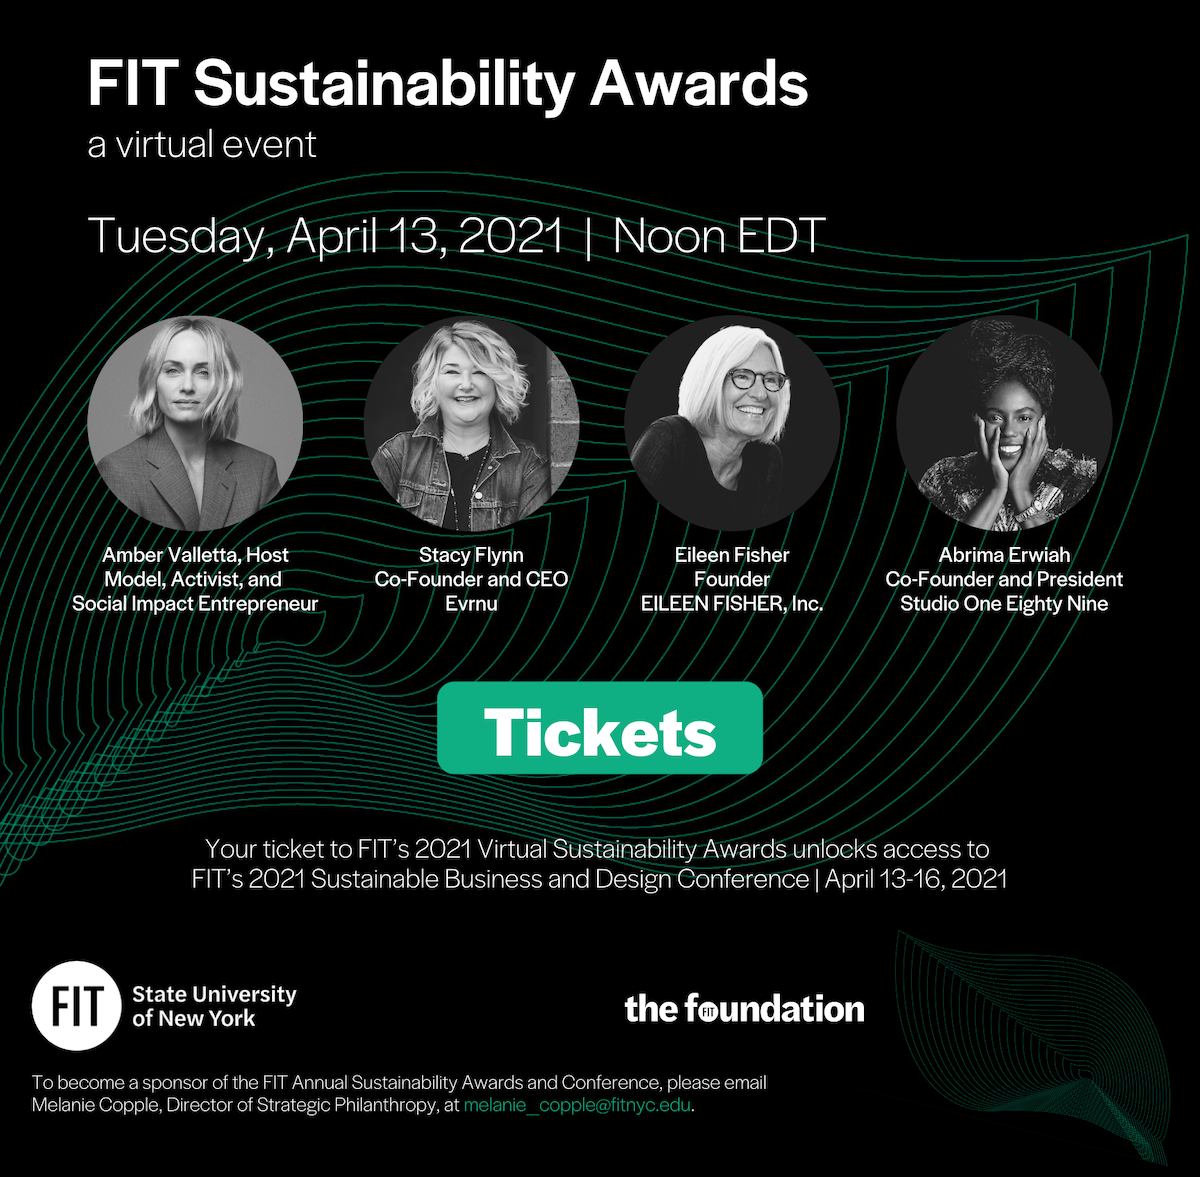 An image containing details about the 2021 FIT Sustainability Awards